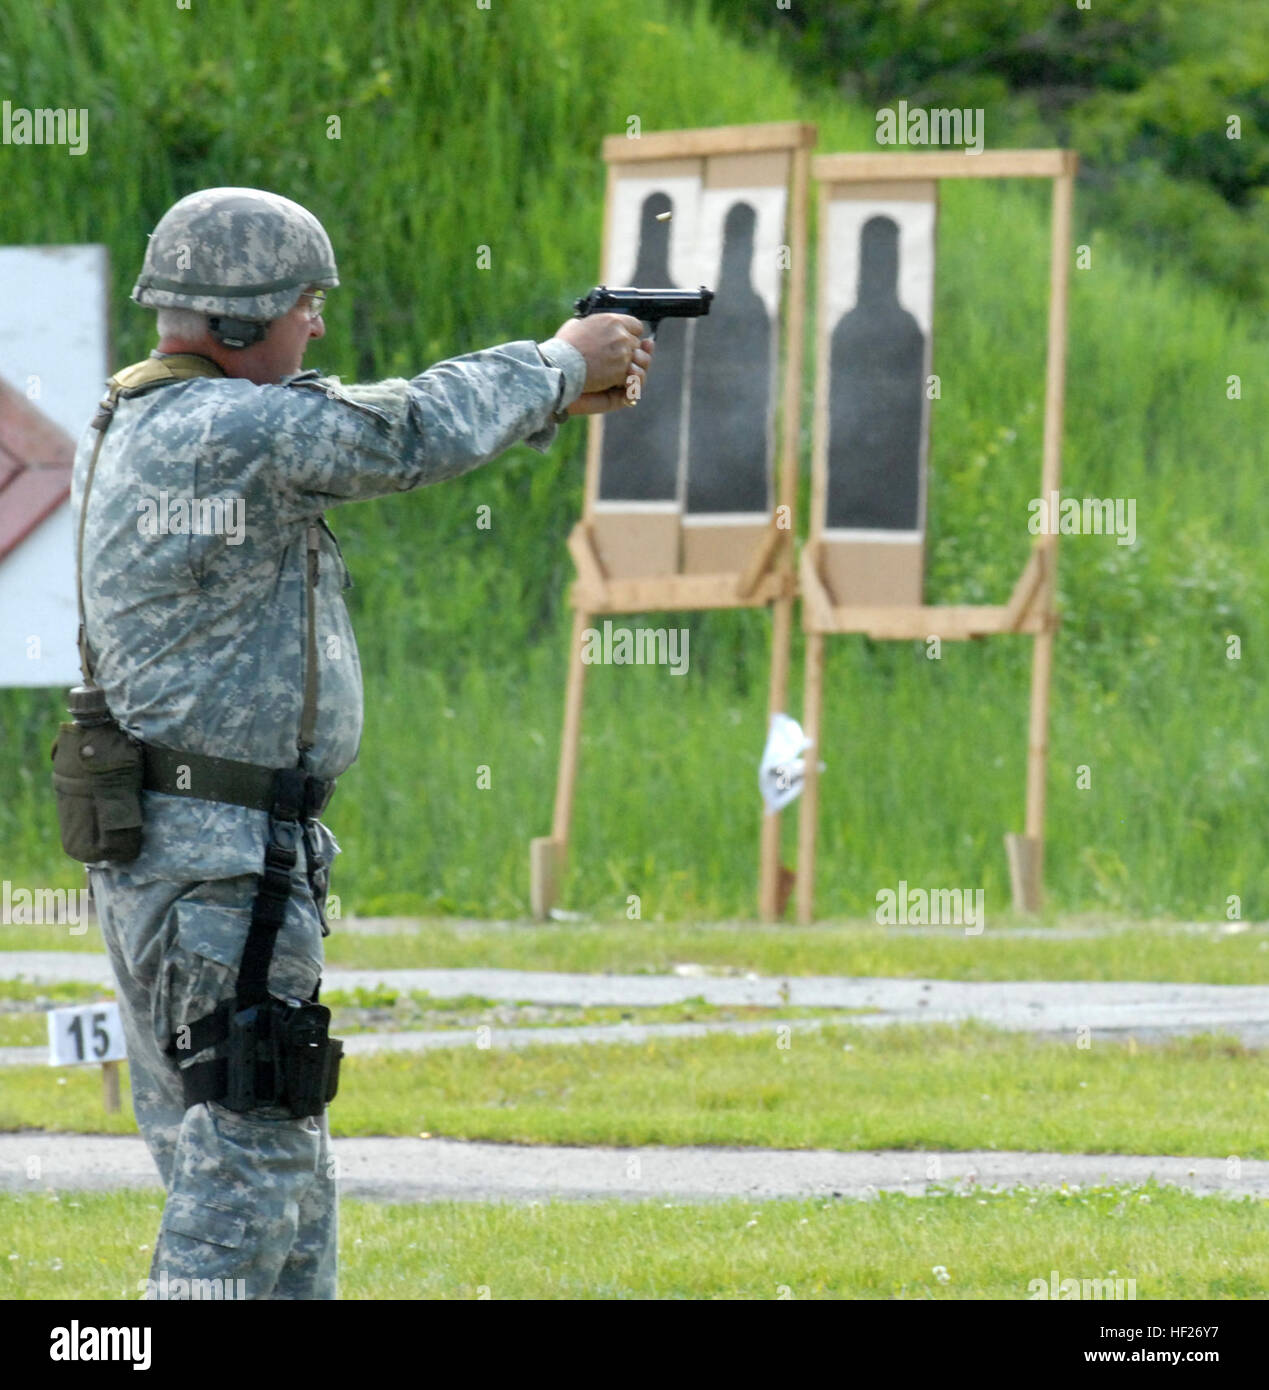 New York Guard Staff Sgt. Joseph Dee fires an M9 pistol during the 35th Annual 'TAG (The Adjutant General) Match - Stock Image